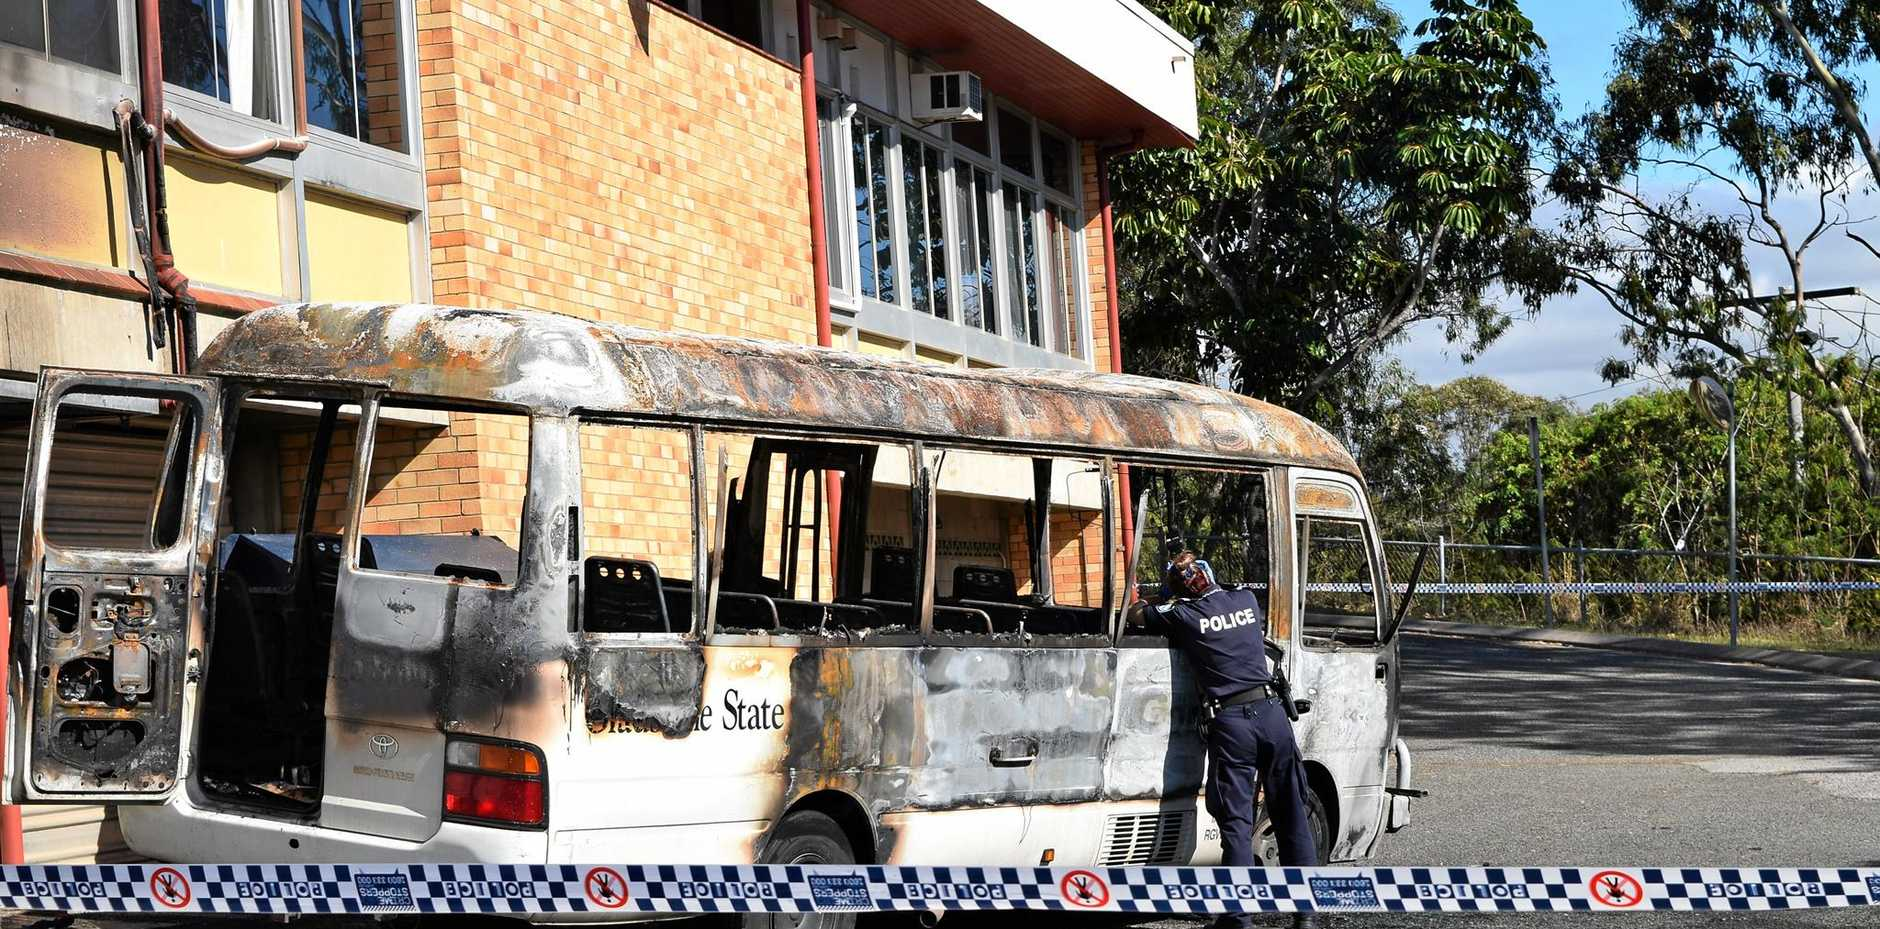 A teenage male has been charged in relation to a bus set on fire Thursday night at Gladstone State High School.